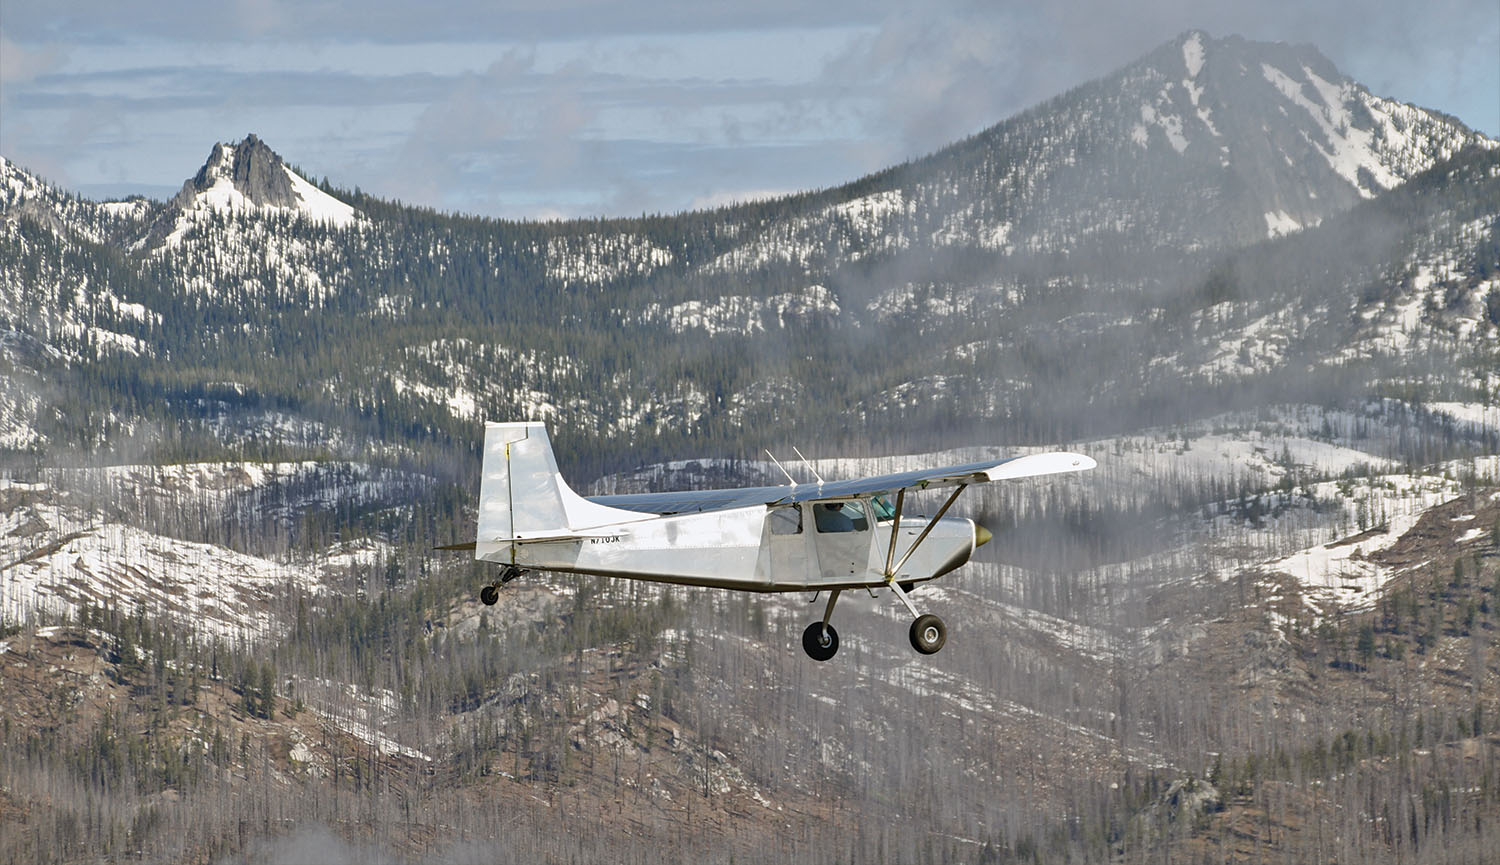 Tundra flying in the mountains